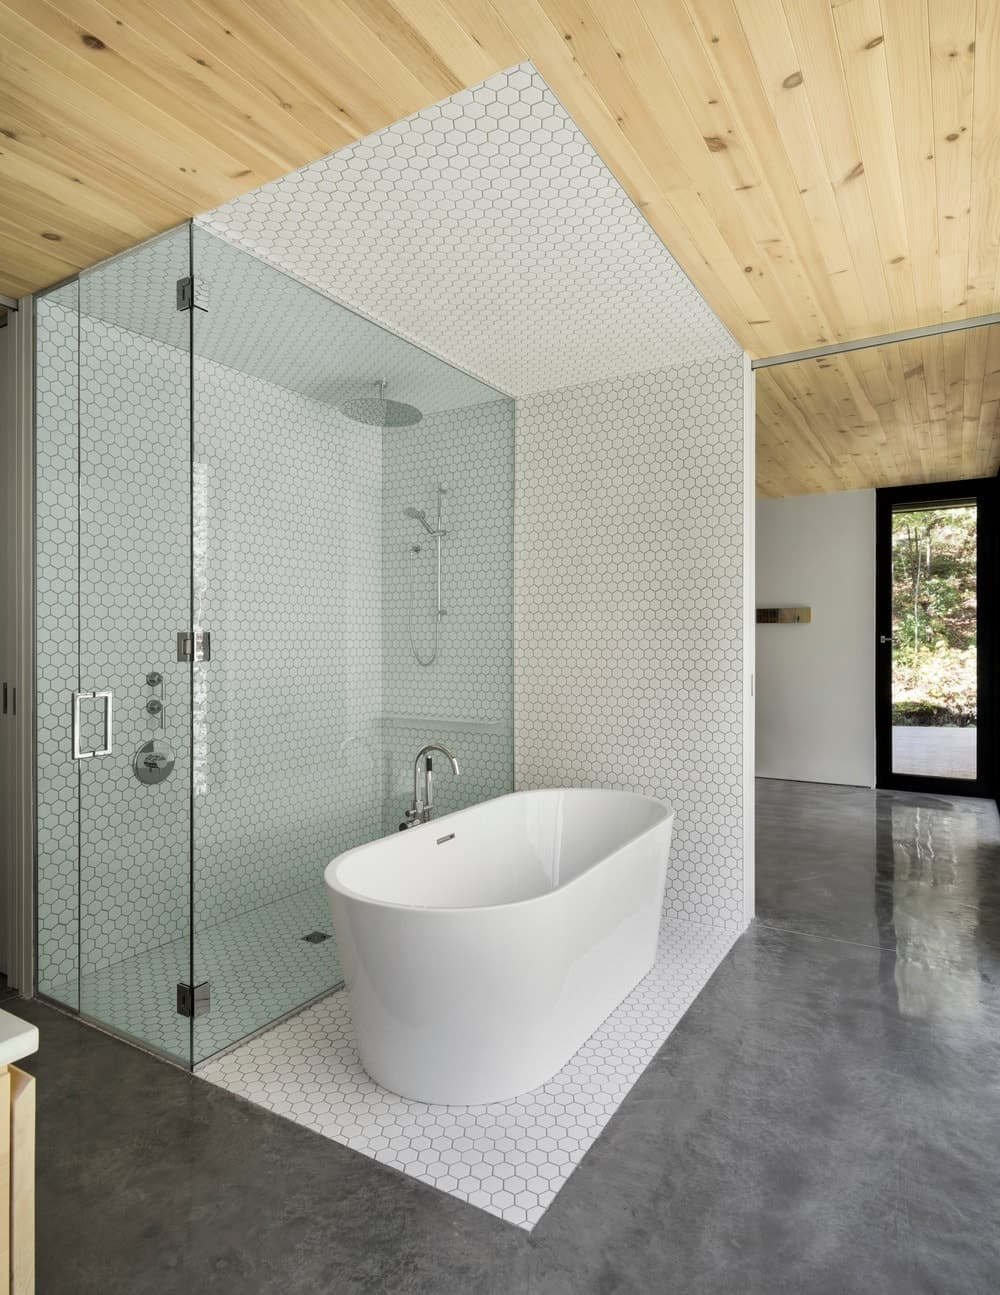 This master bath is as unique as they come. The large walk in shower is placed in the middle of the room next to a freestanding white ceramic tub with only a glass panels separating the two. The large ceiling mounted waterfall shower head will provide a steady flow while the handheld wall mounted shower head will give you more precision. Both the shower and tub walls are lined with a hexagonal bee hive pattern with only the colors of white and gray.